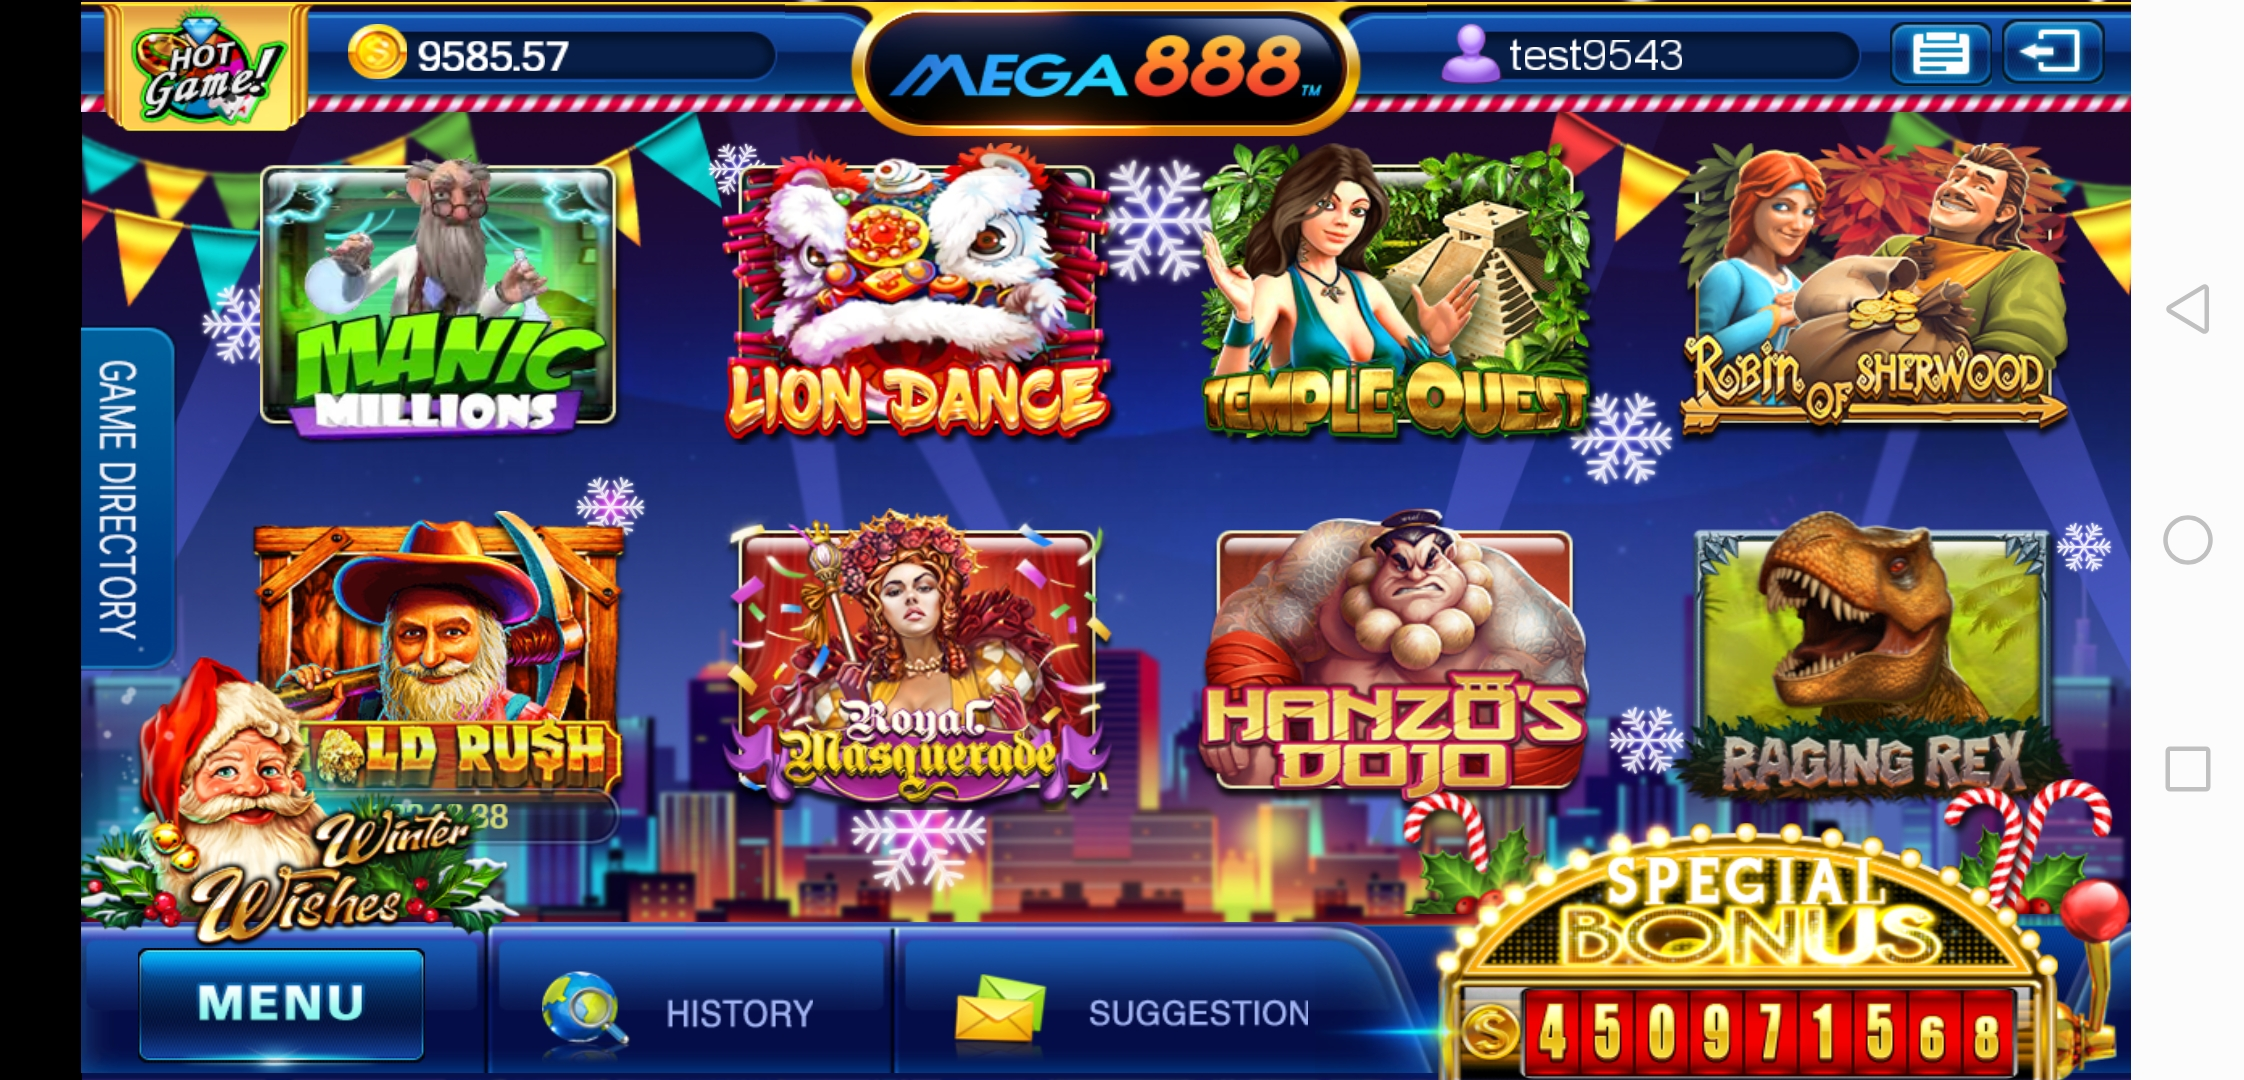 Royal Masquerade Theme Mobile Online Slot in Mega888 apk Download